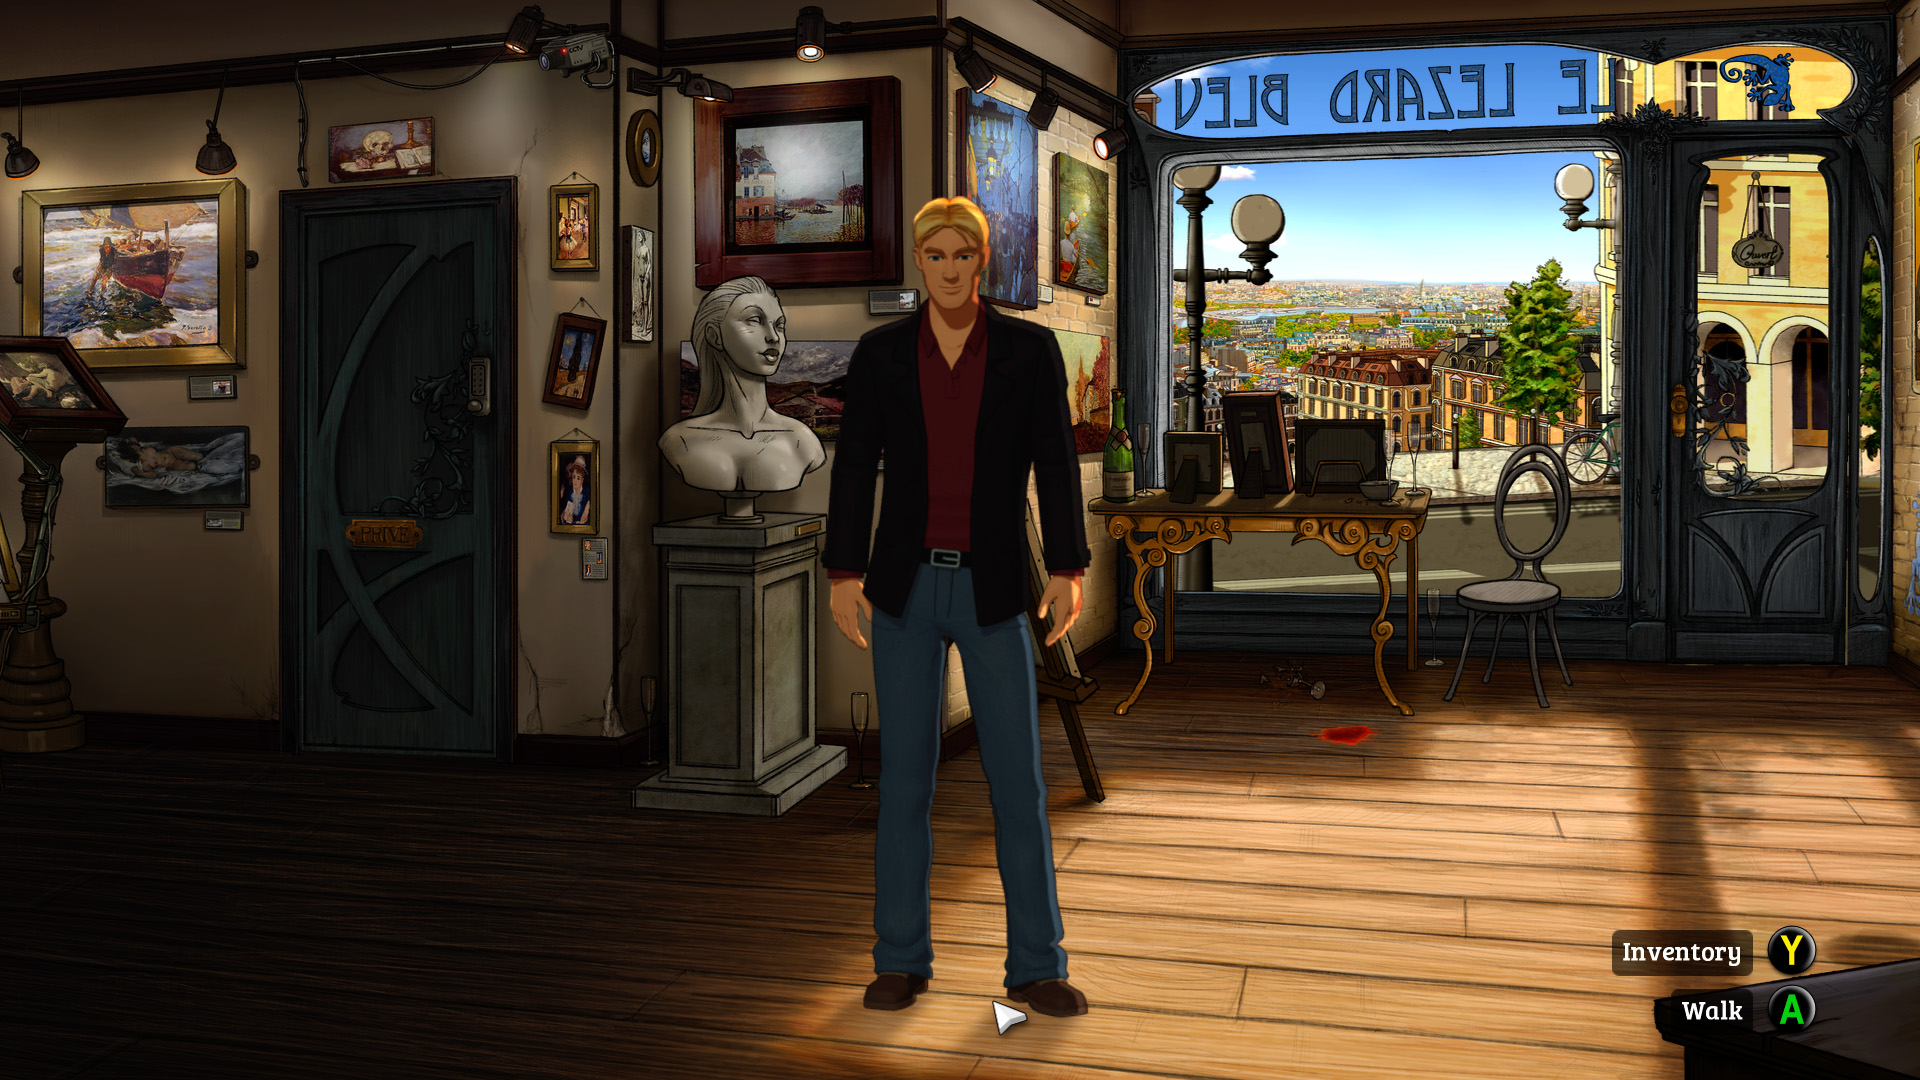 Review: Broken Sword 5 The Serpent's Curse